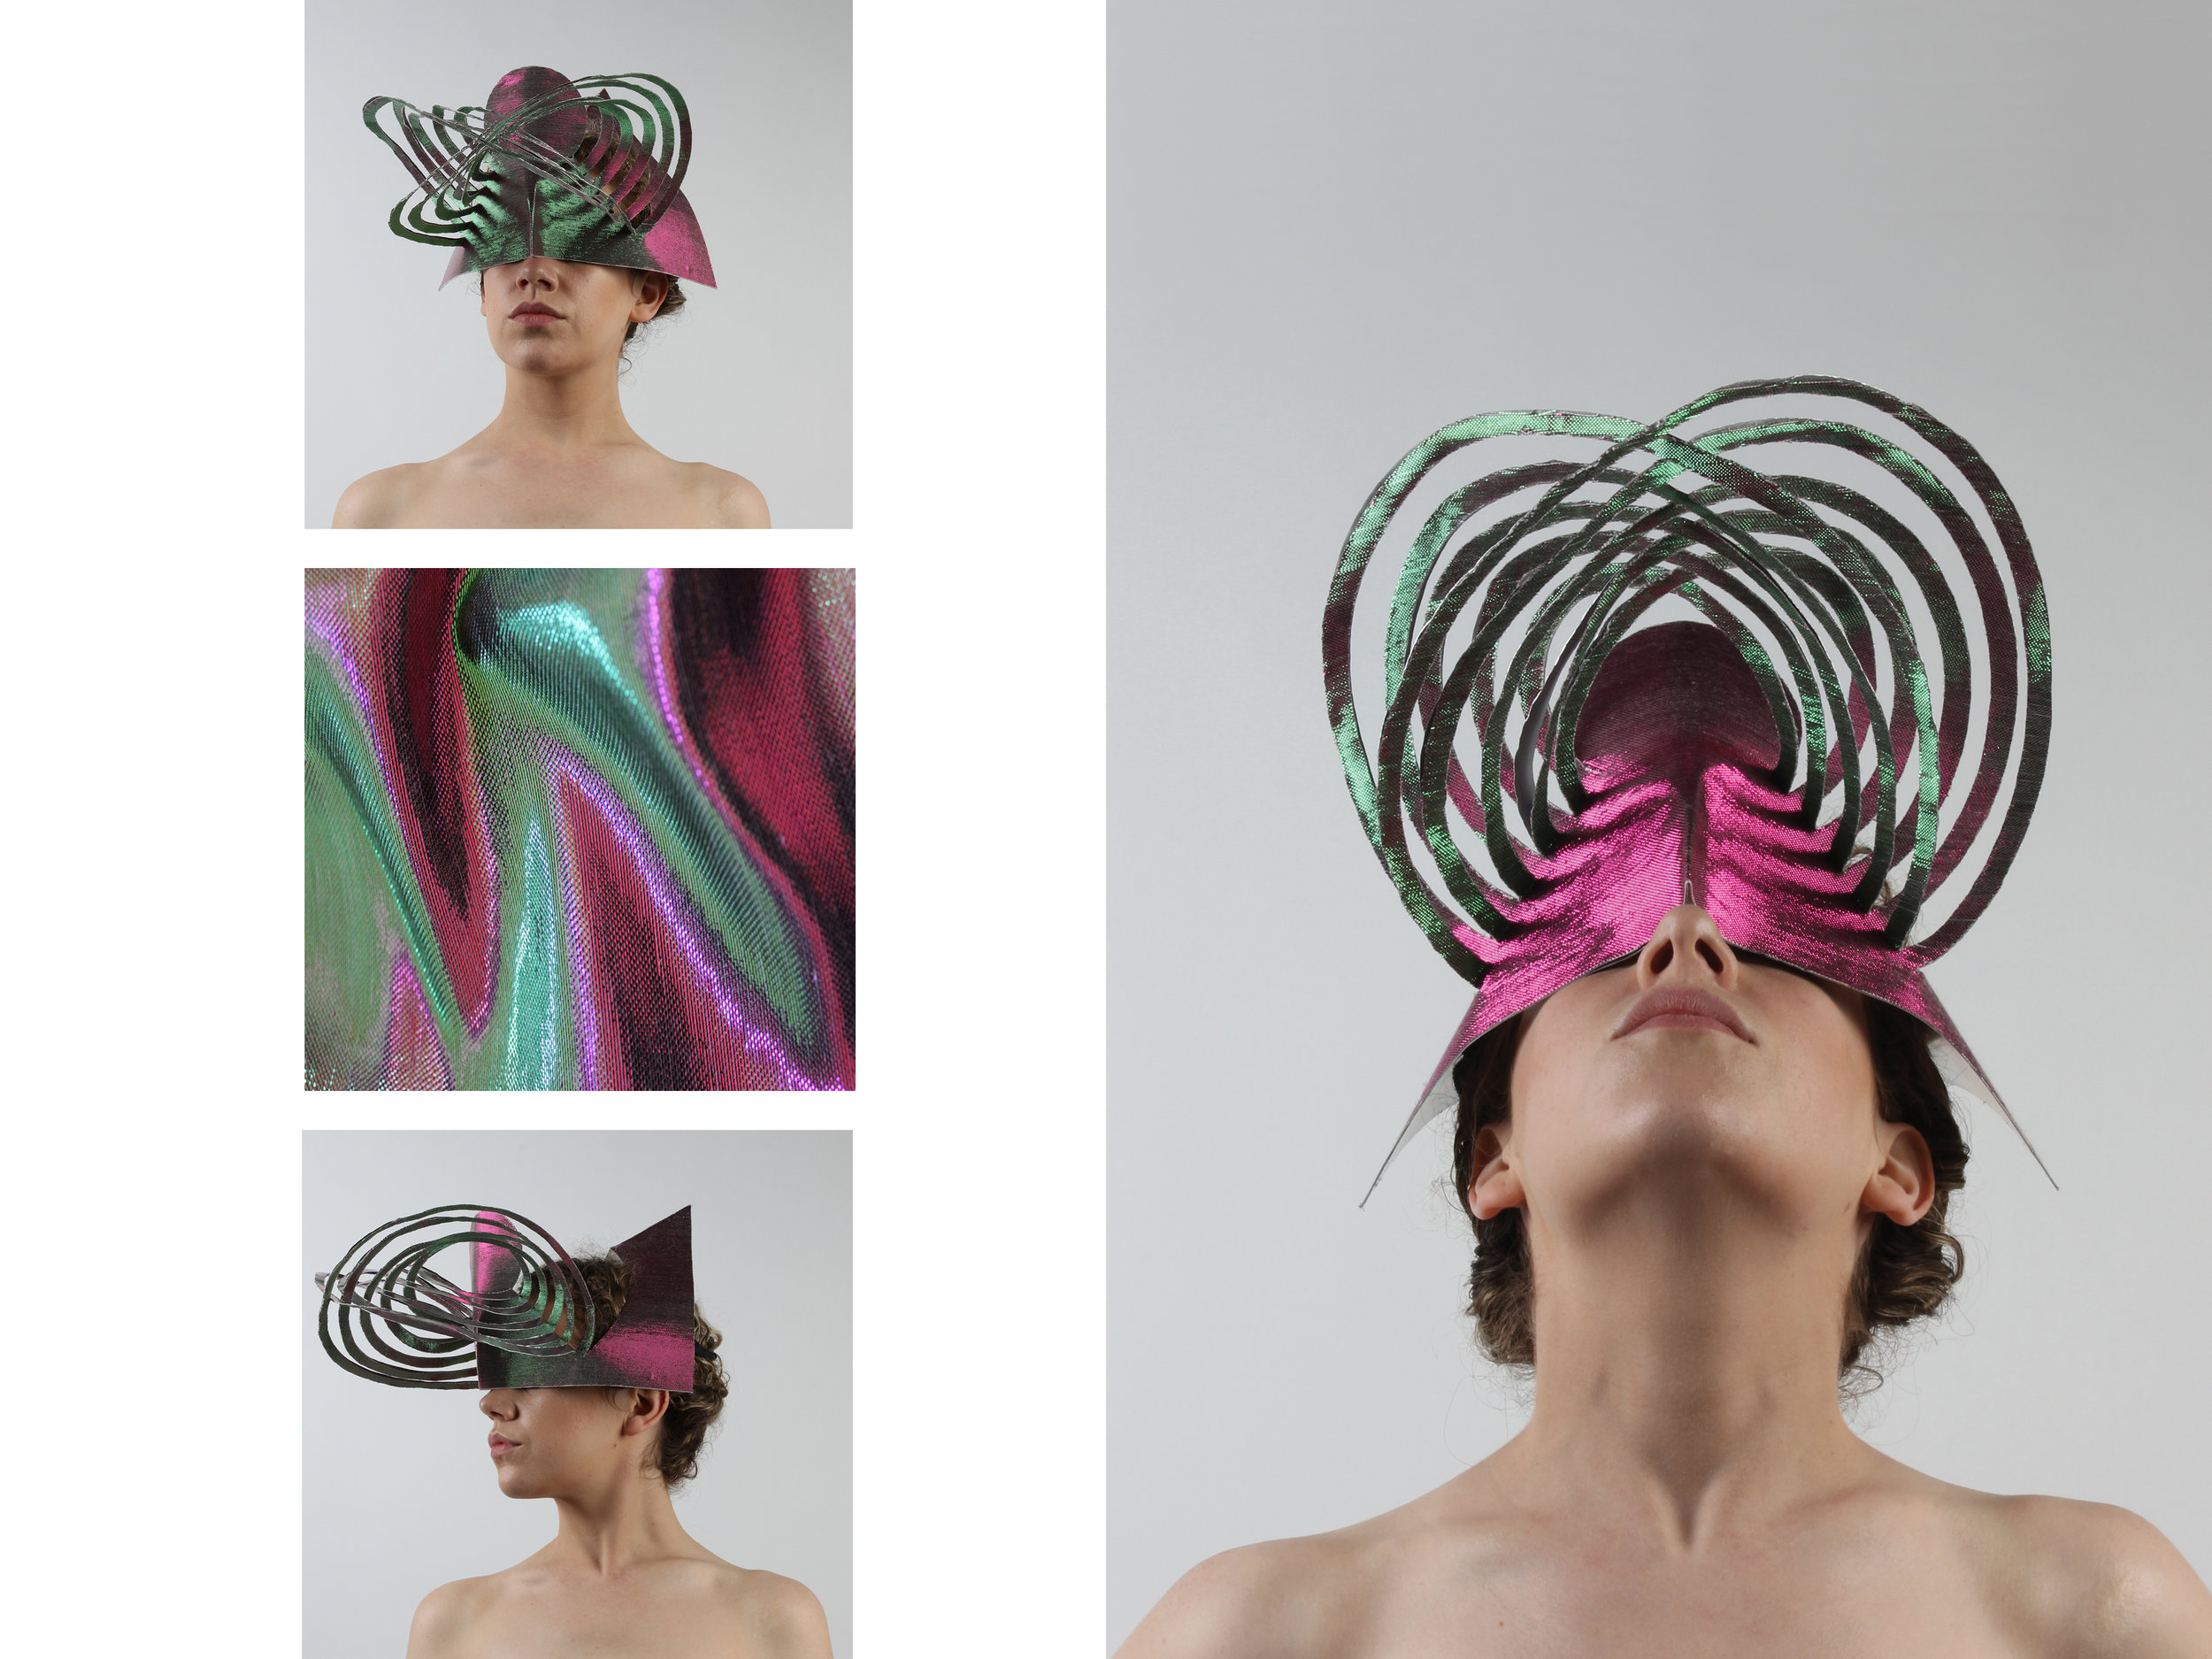 Kinetic hat cut and shaped out of aluminium and two-toned textile